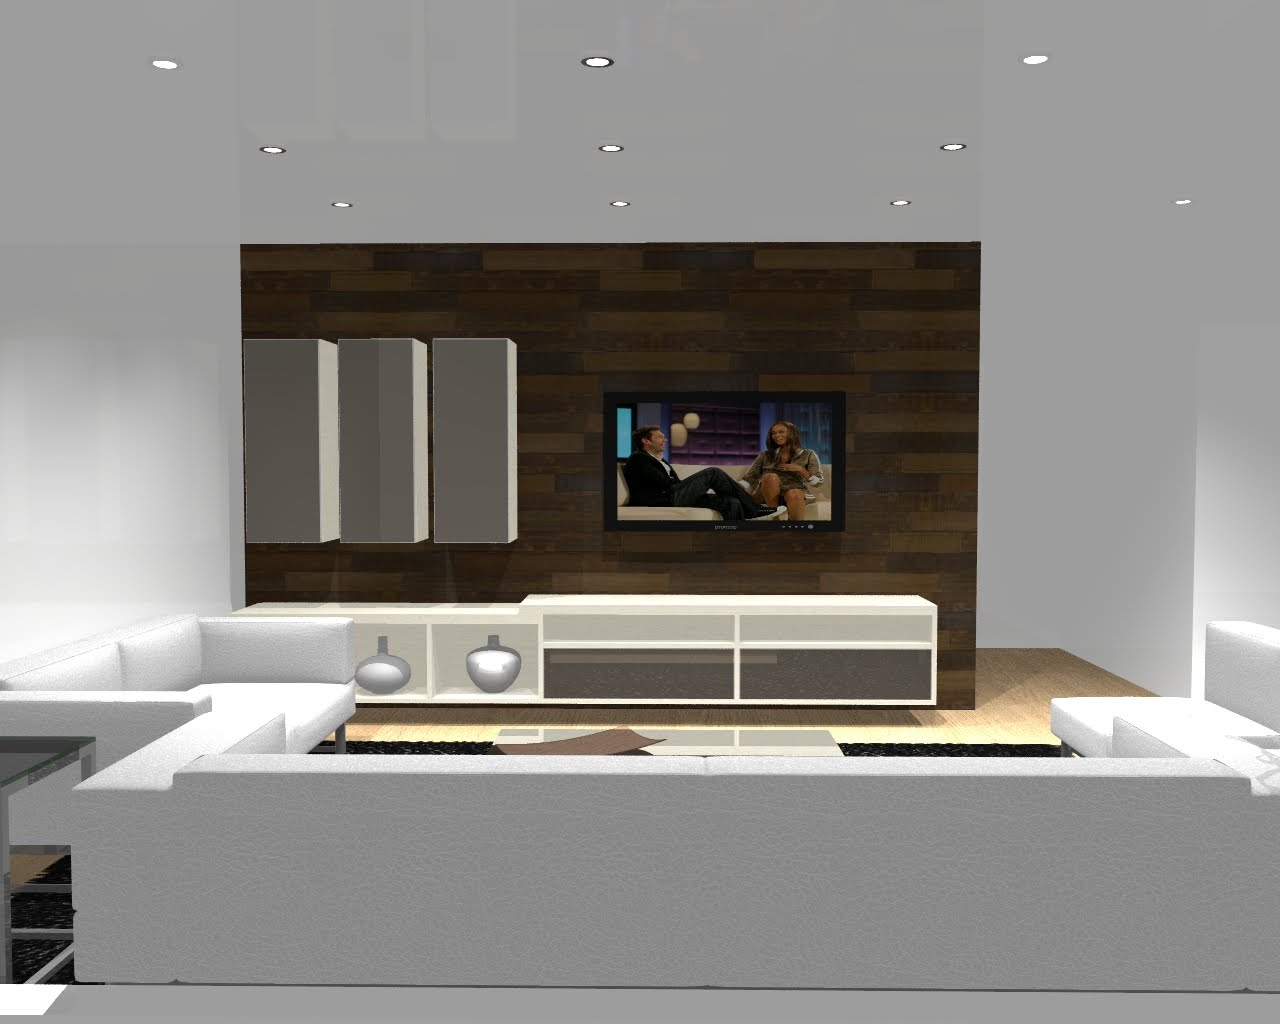 Sala De Estar Jantar E Home Theater ~ de uma sala de estar home theater integrado com a sala de jantar